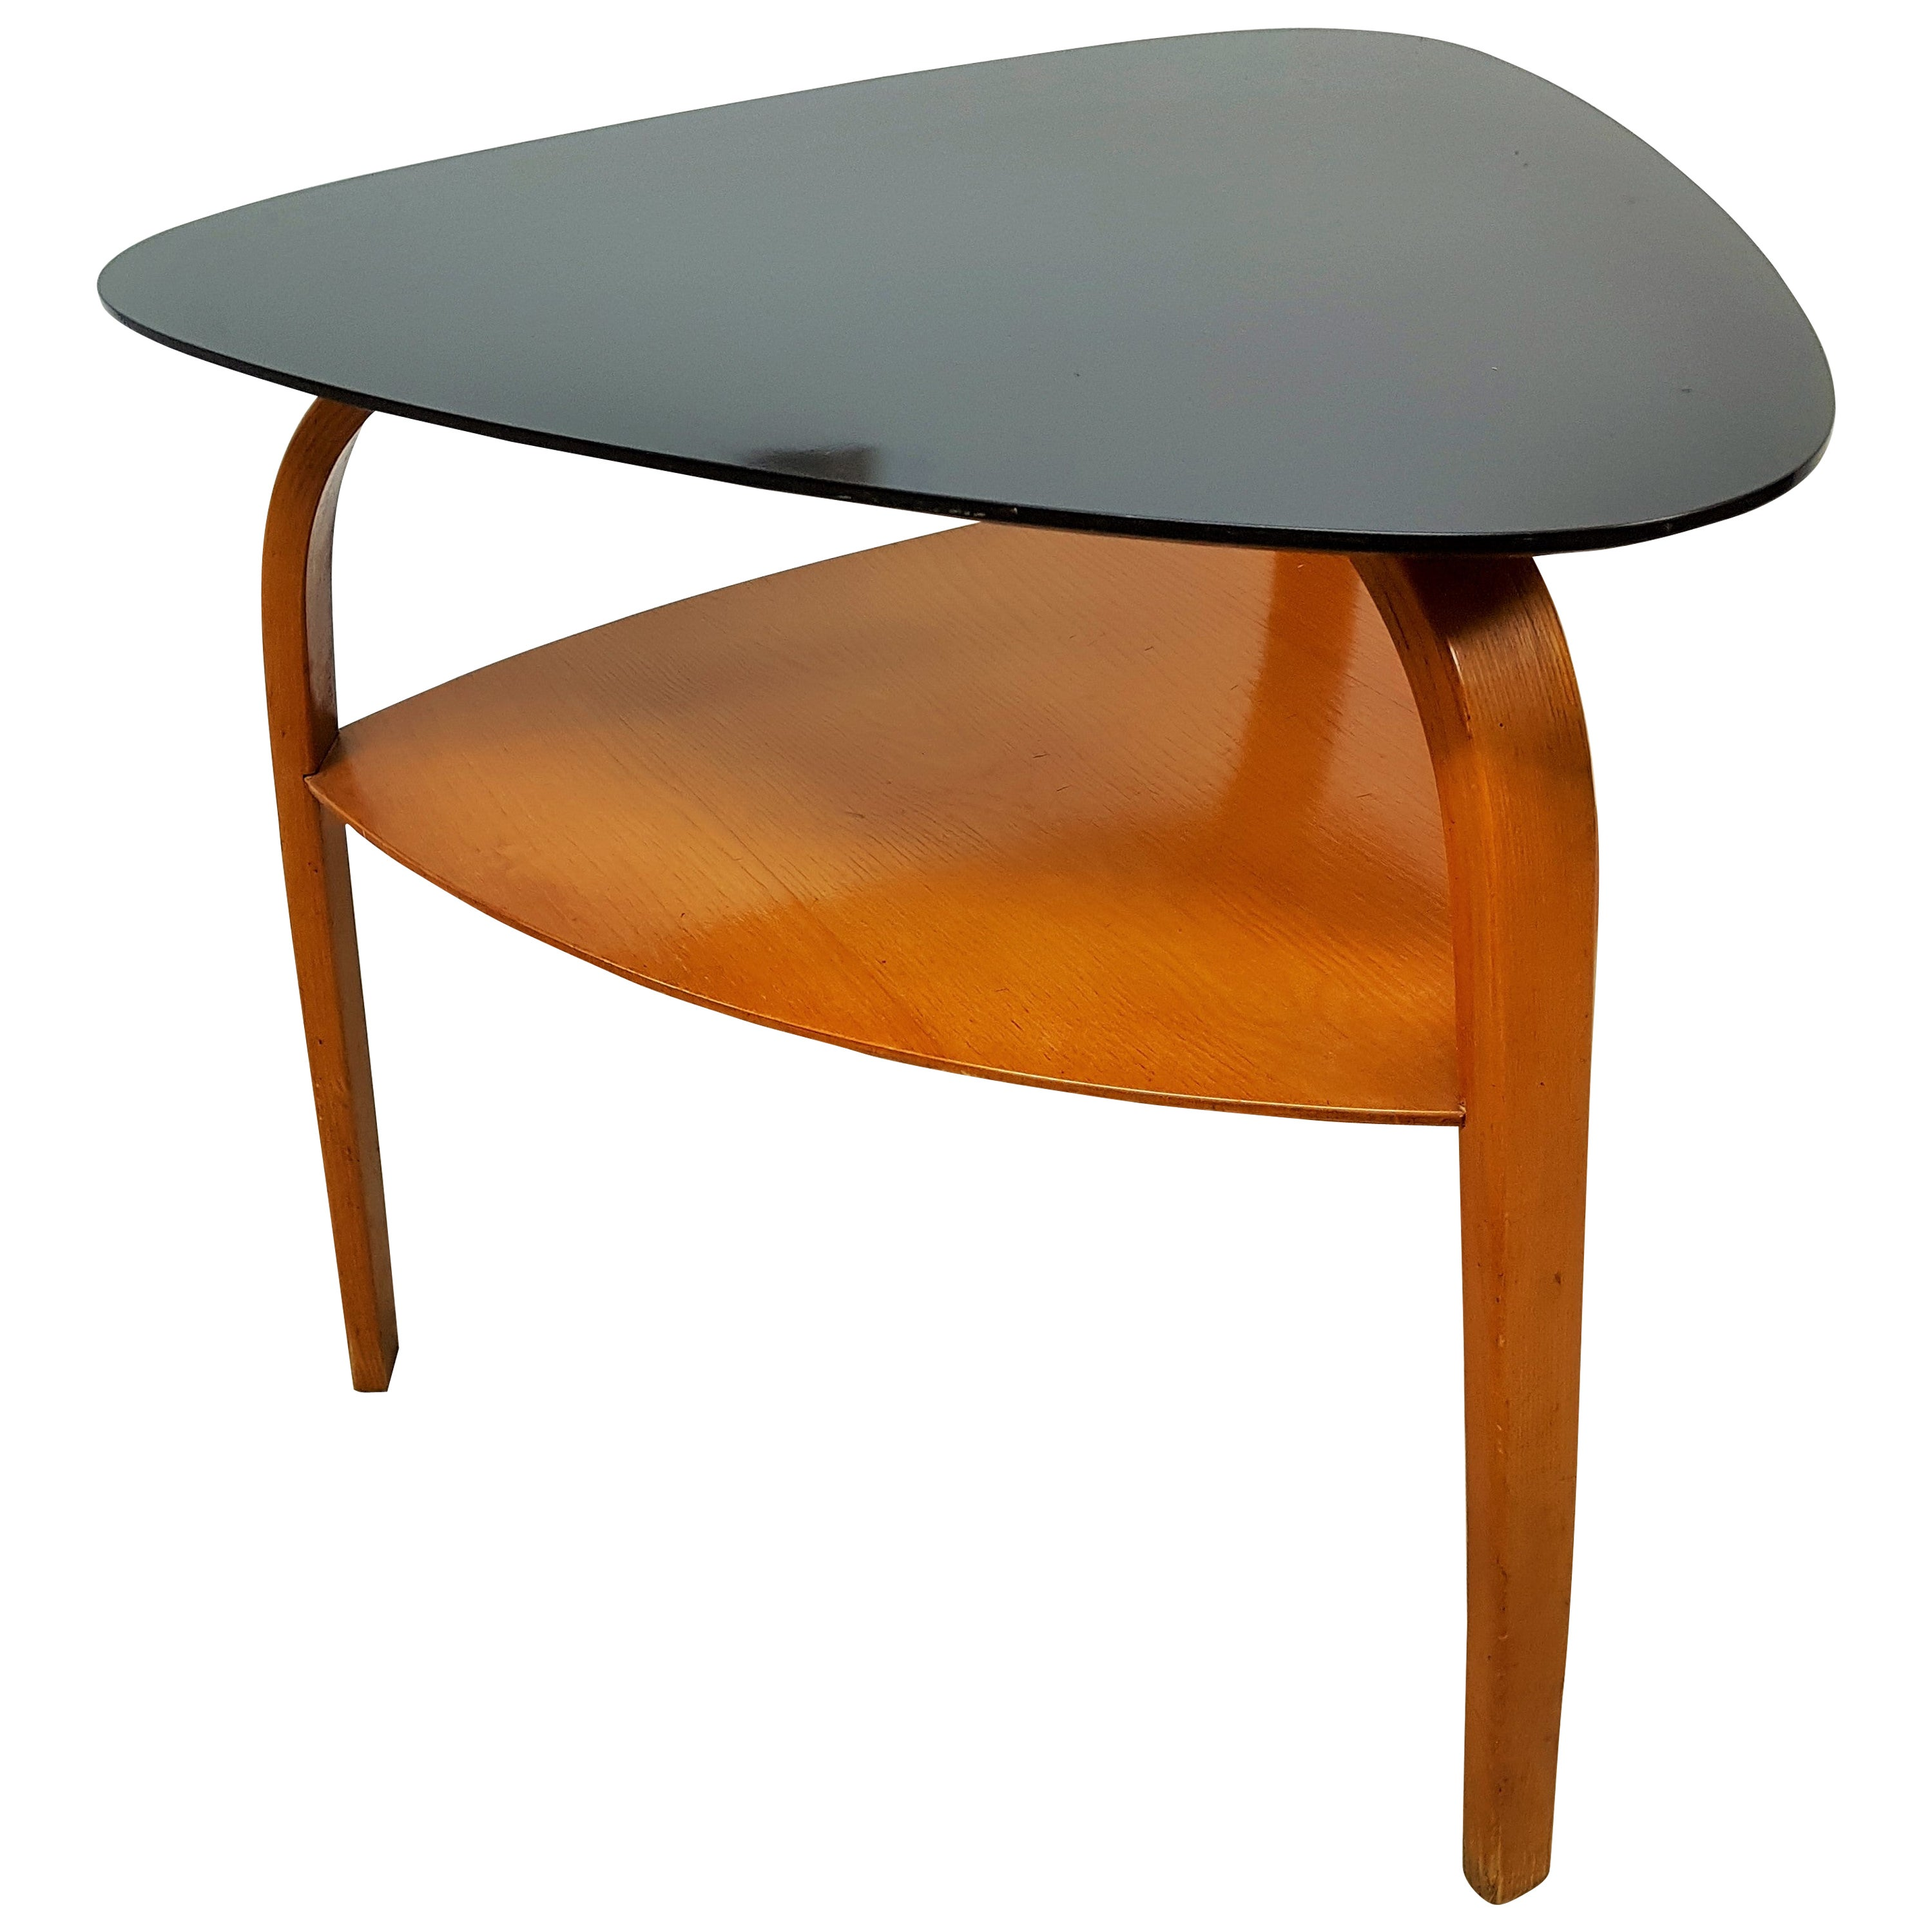 Midcentury Coffee Table Bow Wood by Steiner, France, 1955